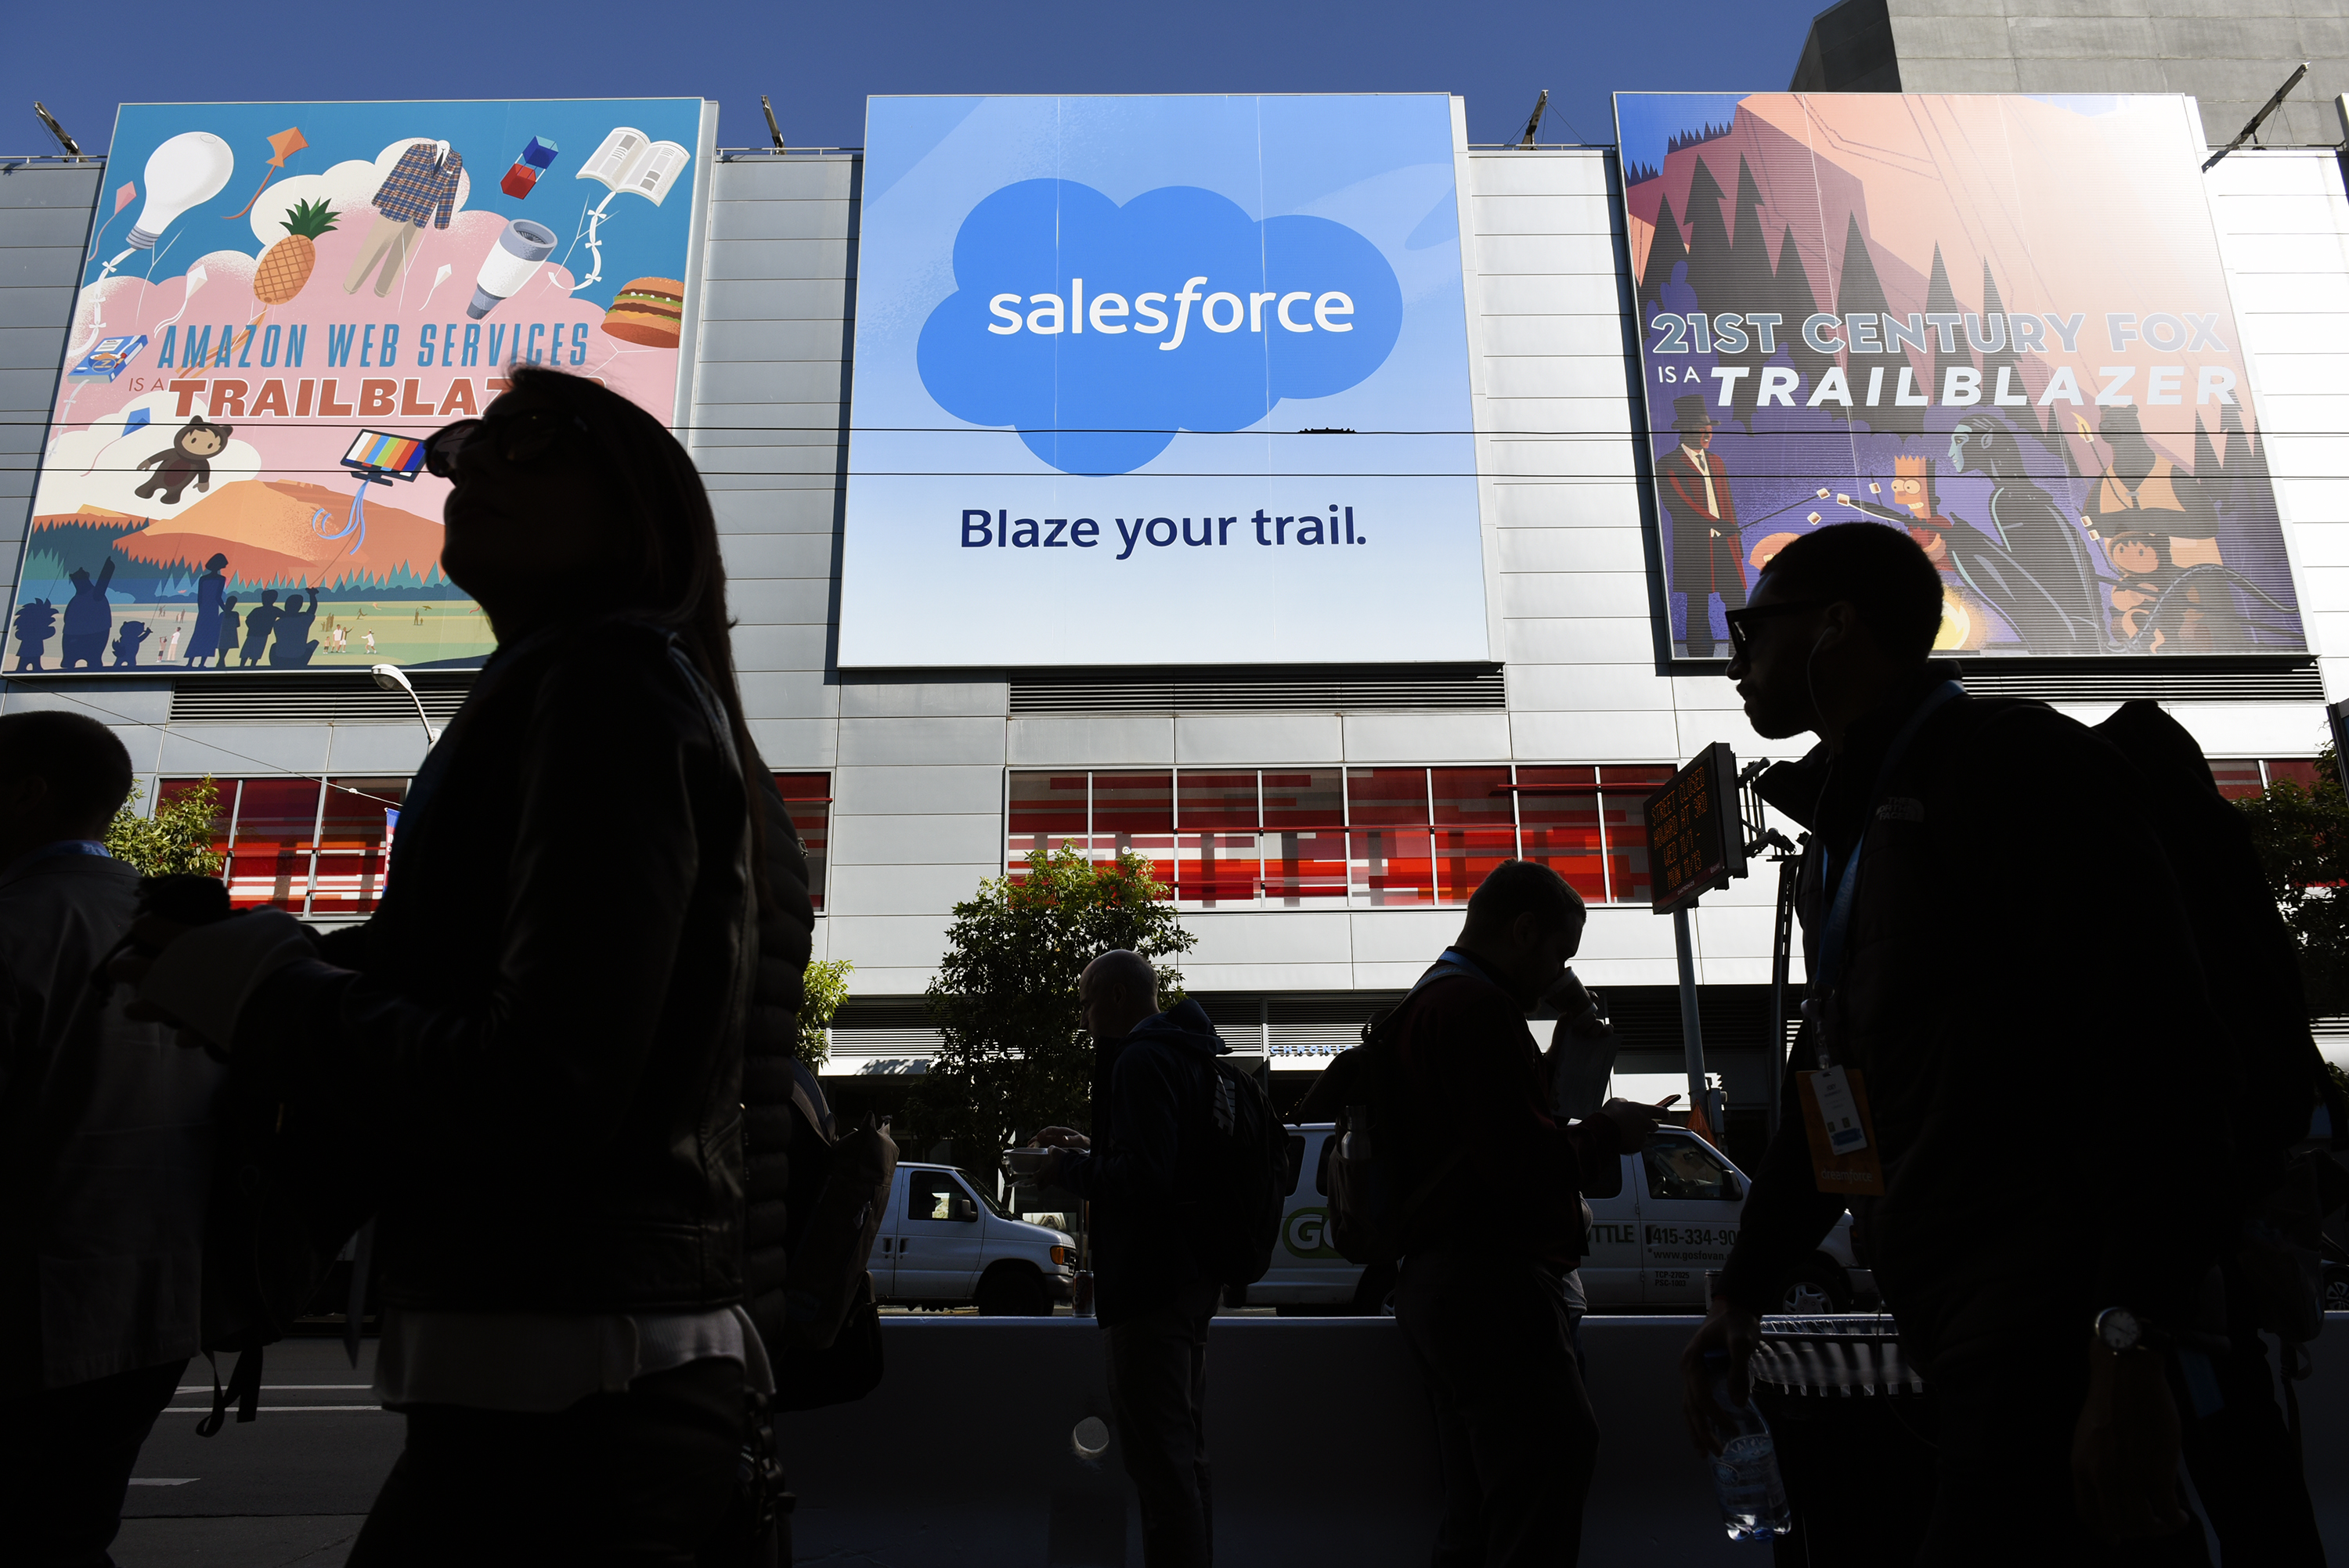 Pedestrians walk past signage for the DreamForce Conference in San Francisco, California, U.S., on Monday, Nov. 6, 2017. Salesforce Chief Executive Officer Marc Benioff -- whose central products help businesses manage customer relationships -- wants to find new ways to encourage greater use of the platforms that enable clients to build software and customize features.